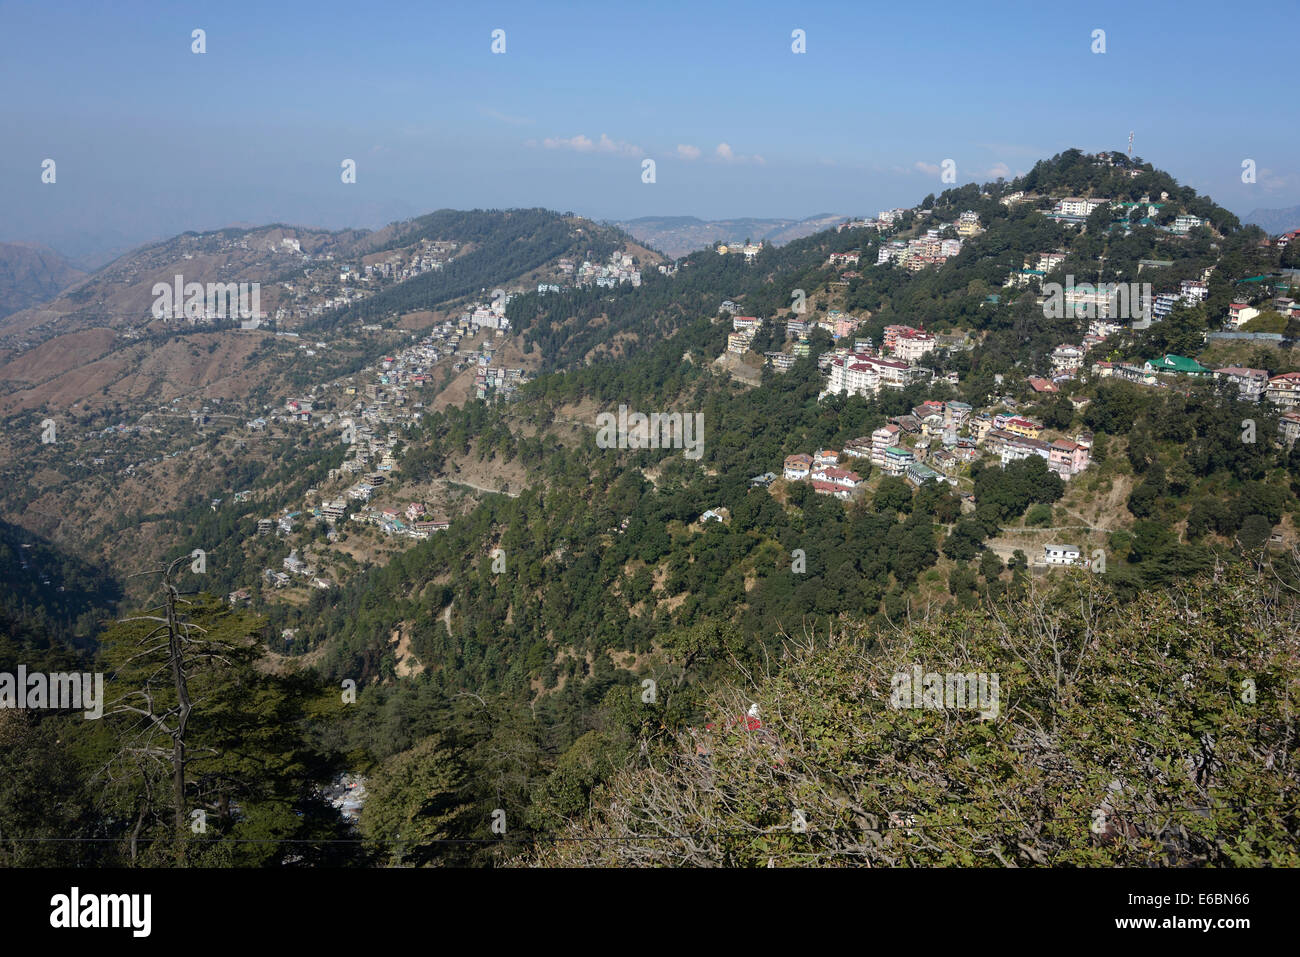 The suburbs of Shimla on the Himalayan foothills from the Ridge in Shimla ,Himachal Pradesh,India - Stock Image